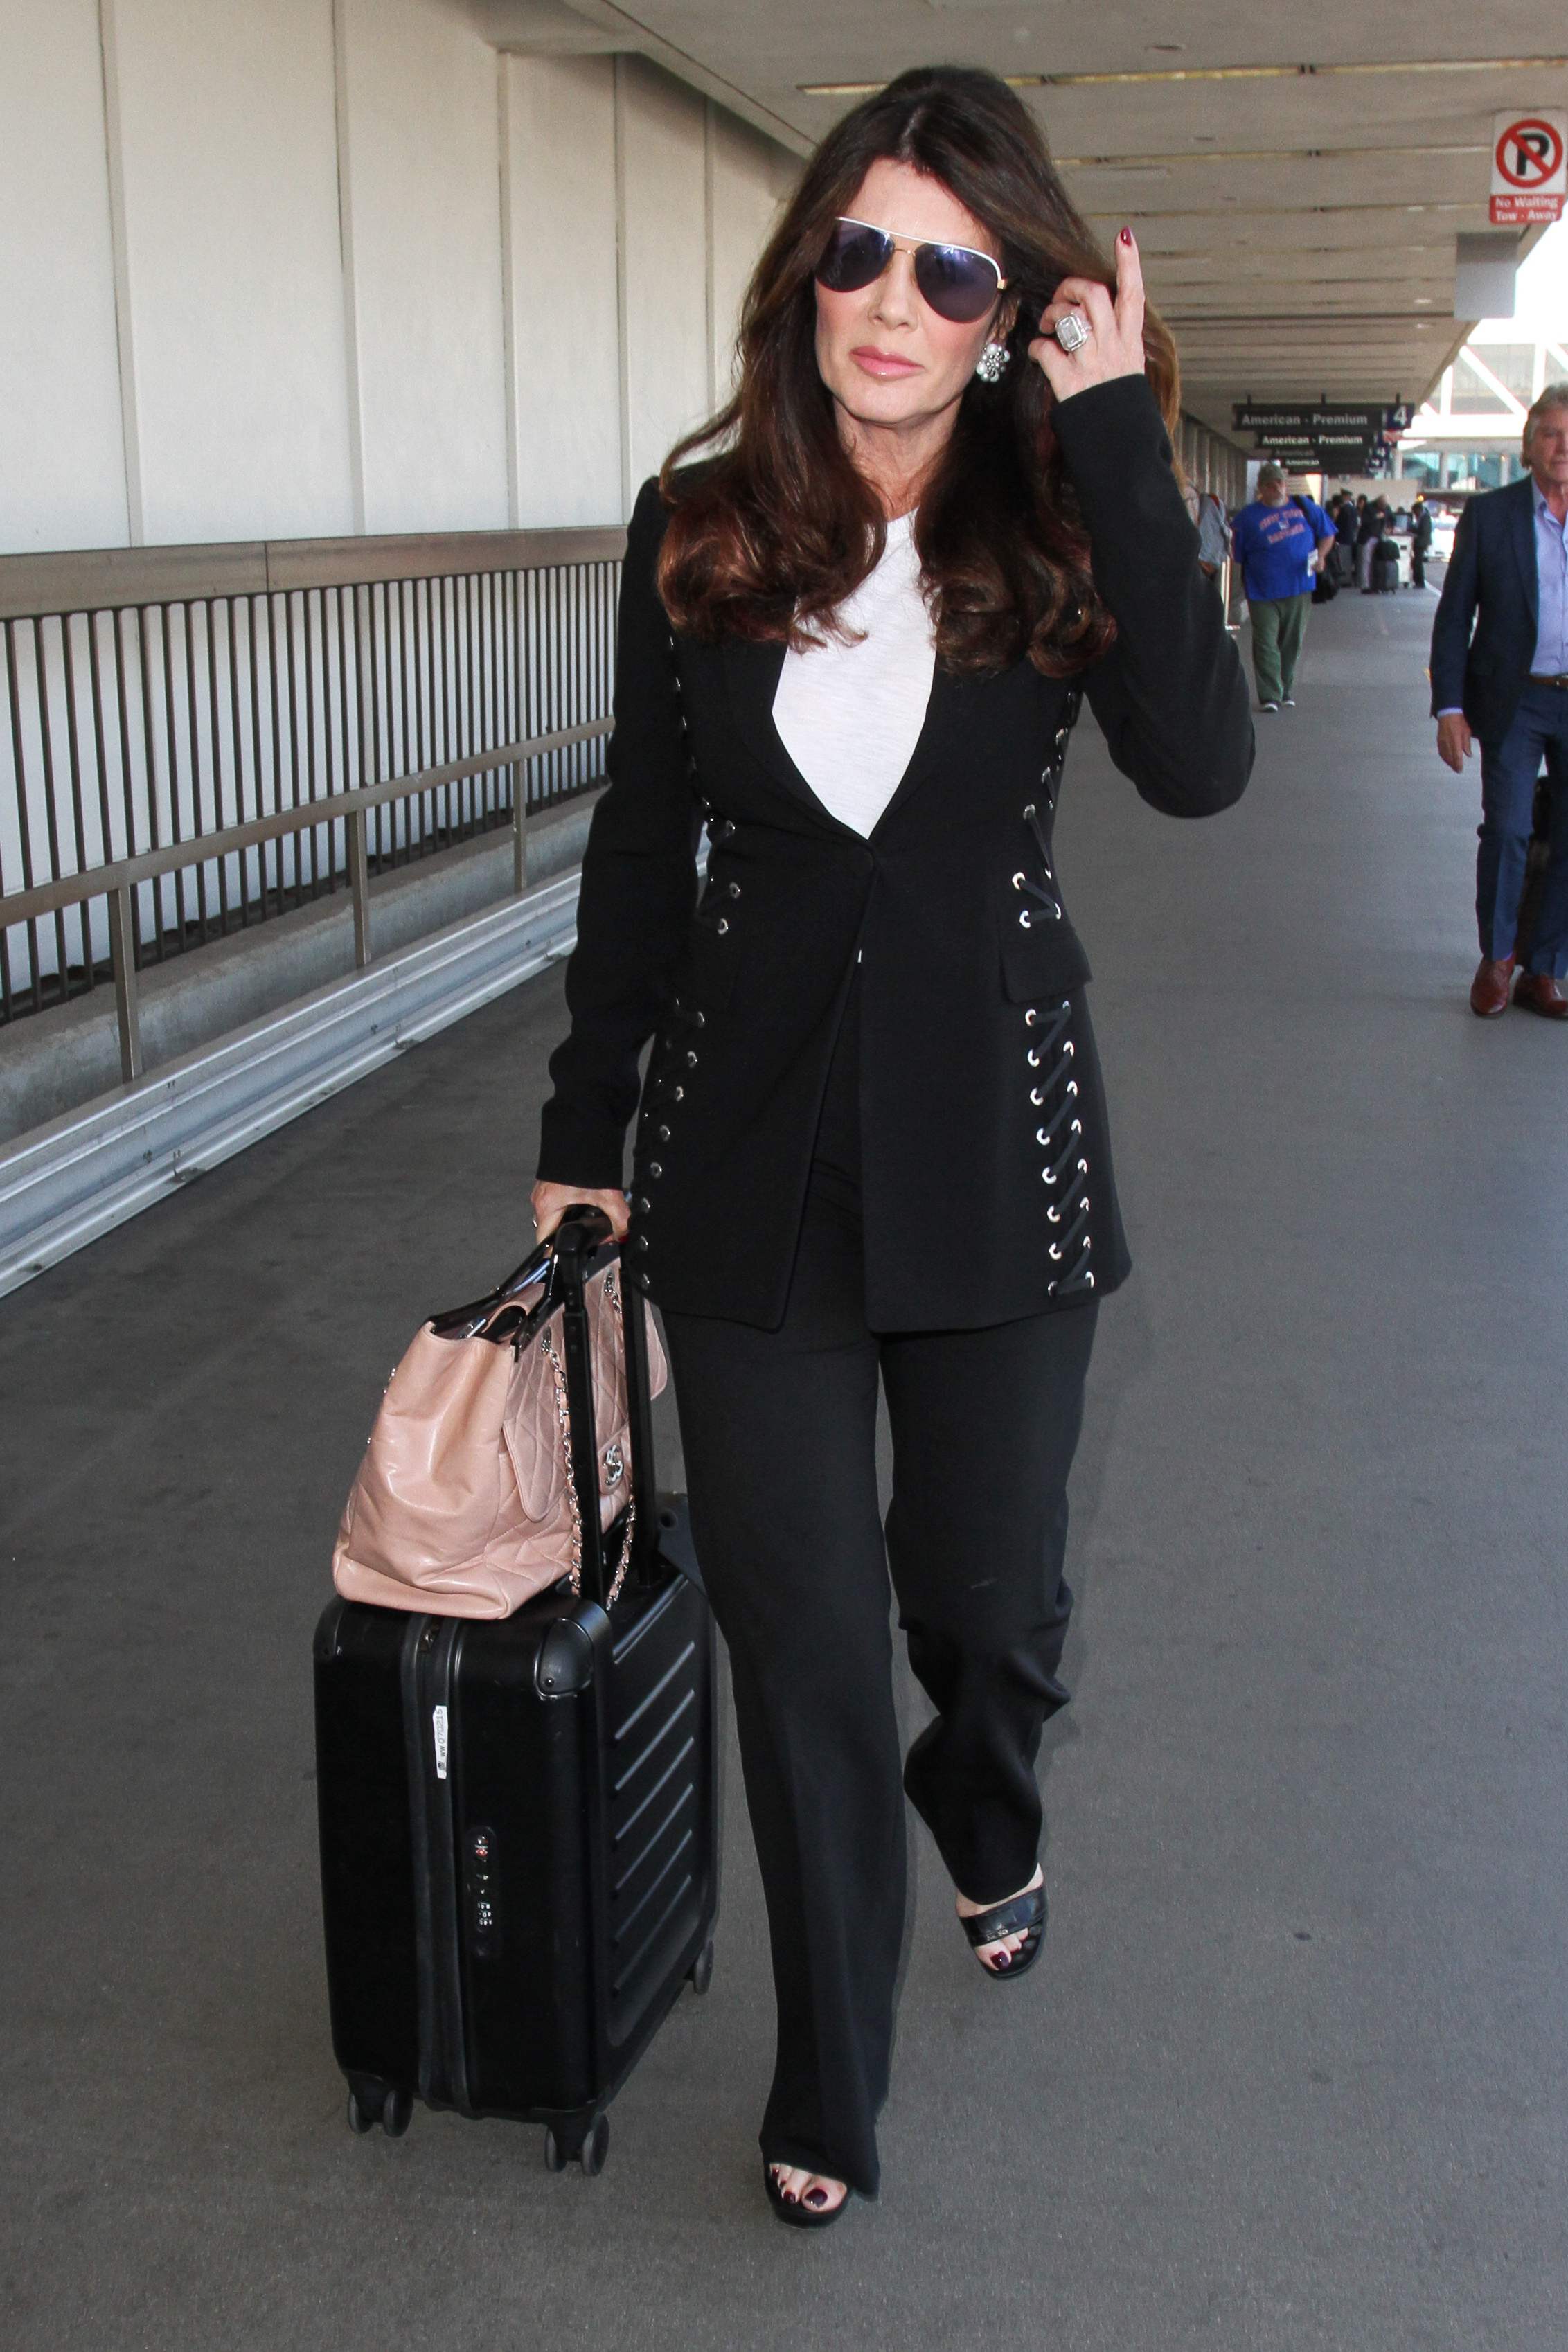 Lisa Vanderpump is dressed to do business